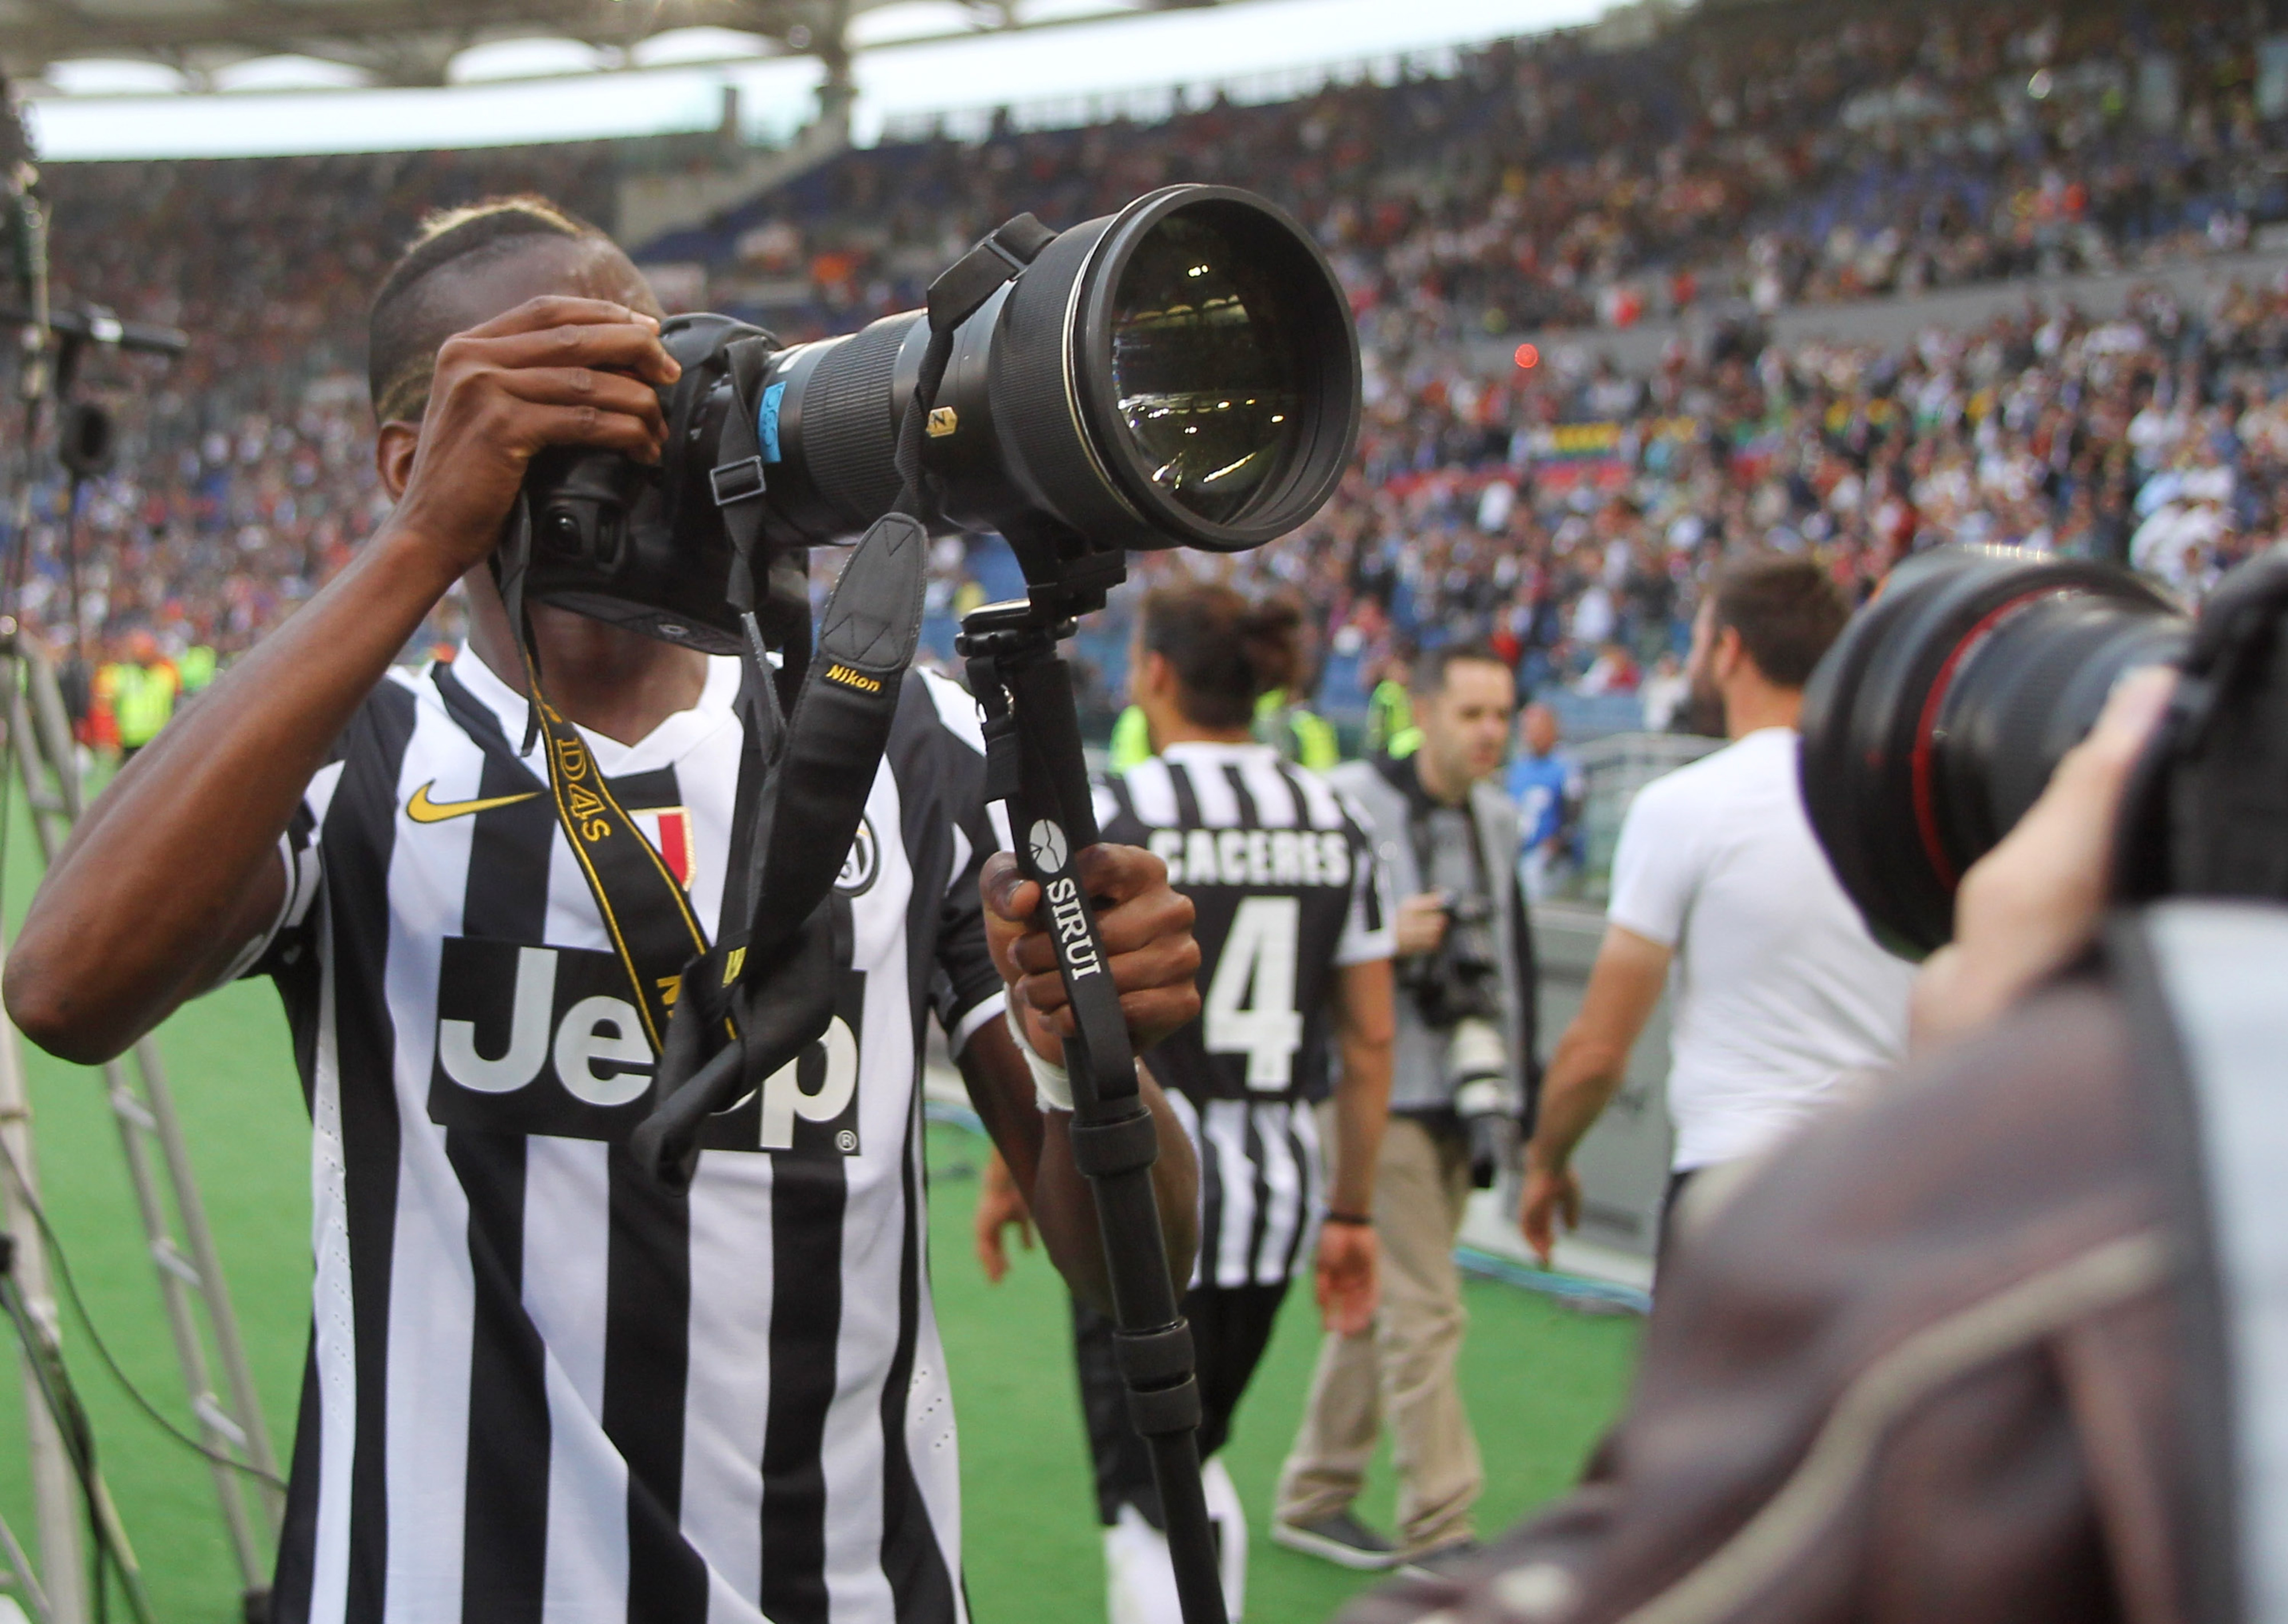 Paul Pogba, provider of fantastic pictures, keeps giving.